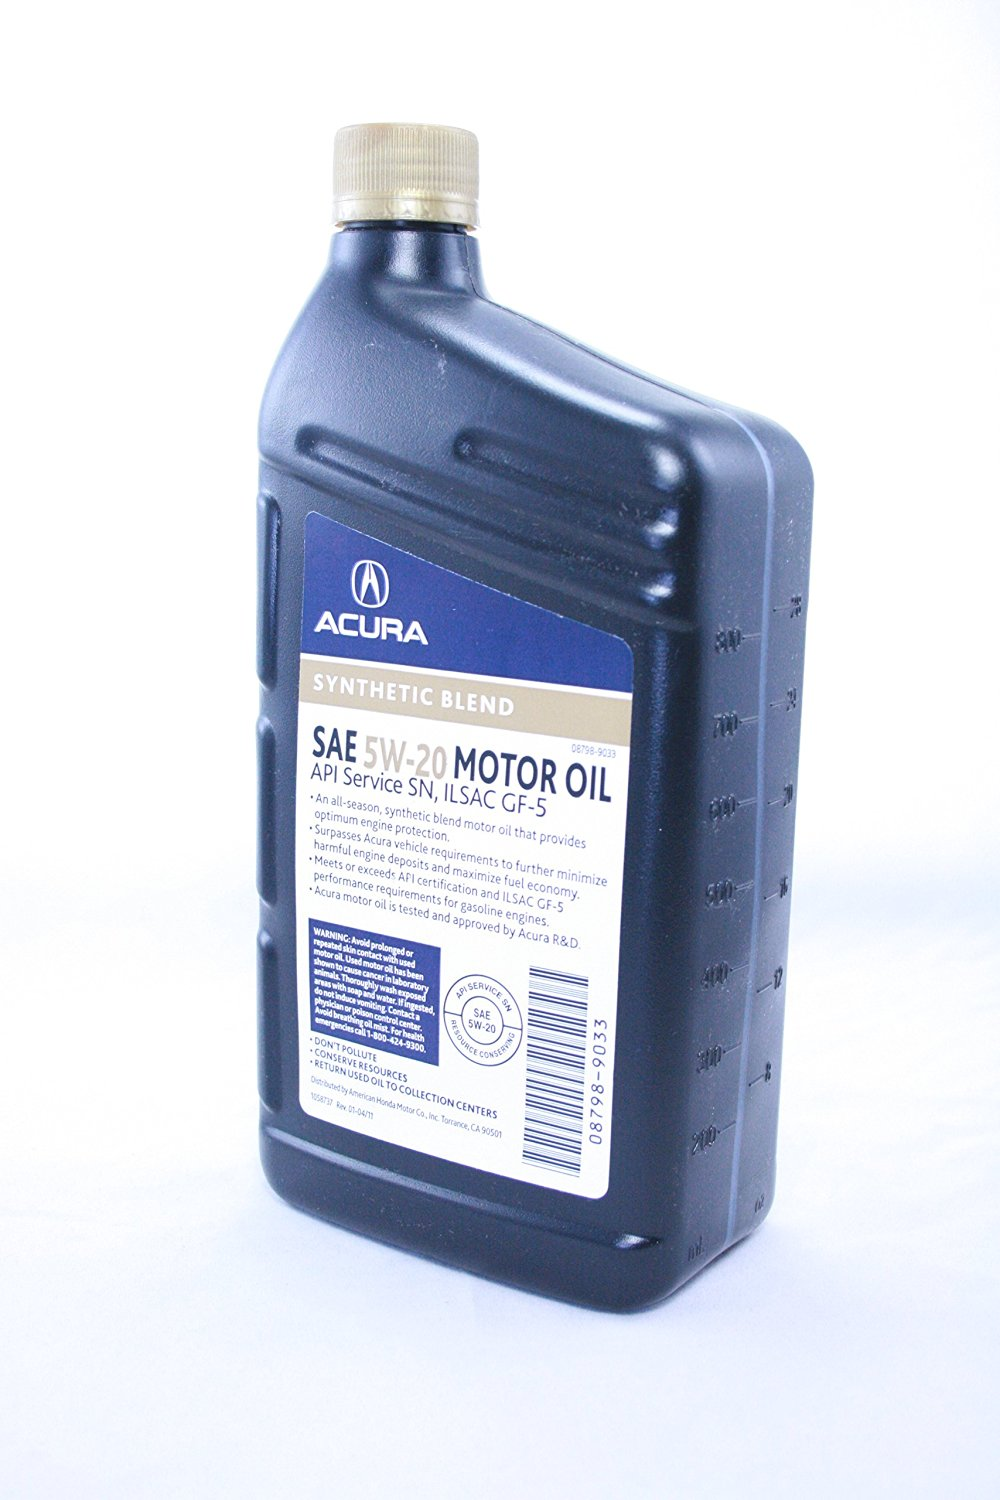 Acura Synthetic Blend Motor Oil SAE 5W 20 MADE BY HONDA 1 Quart